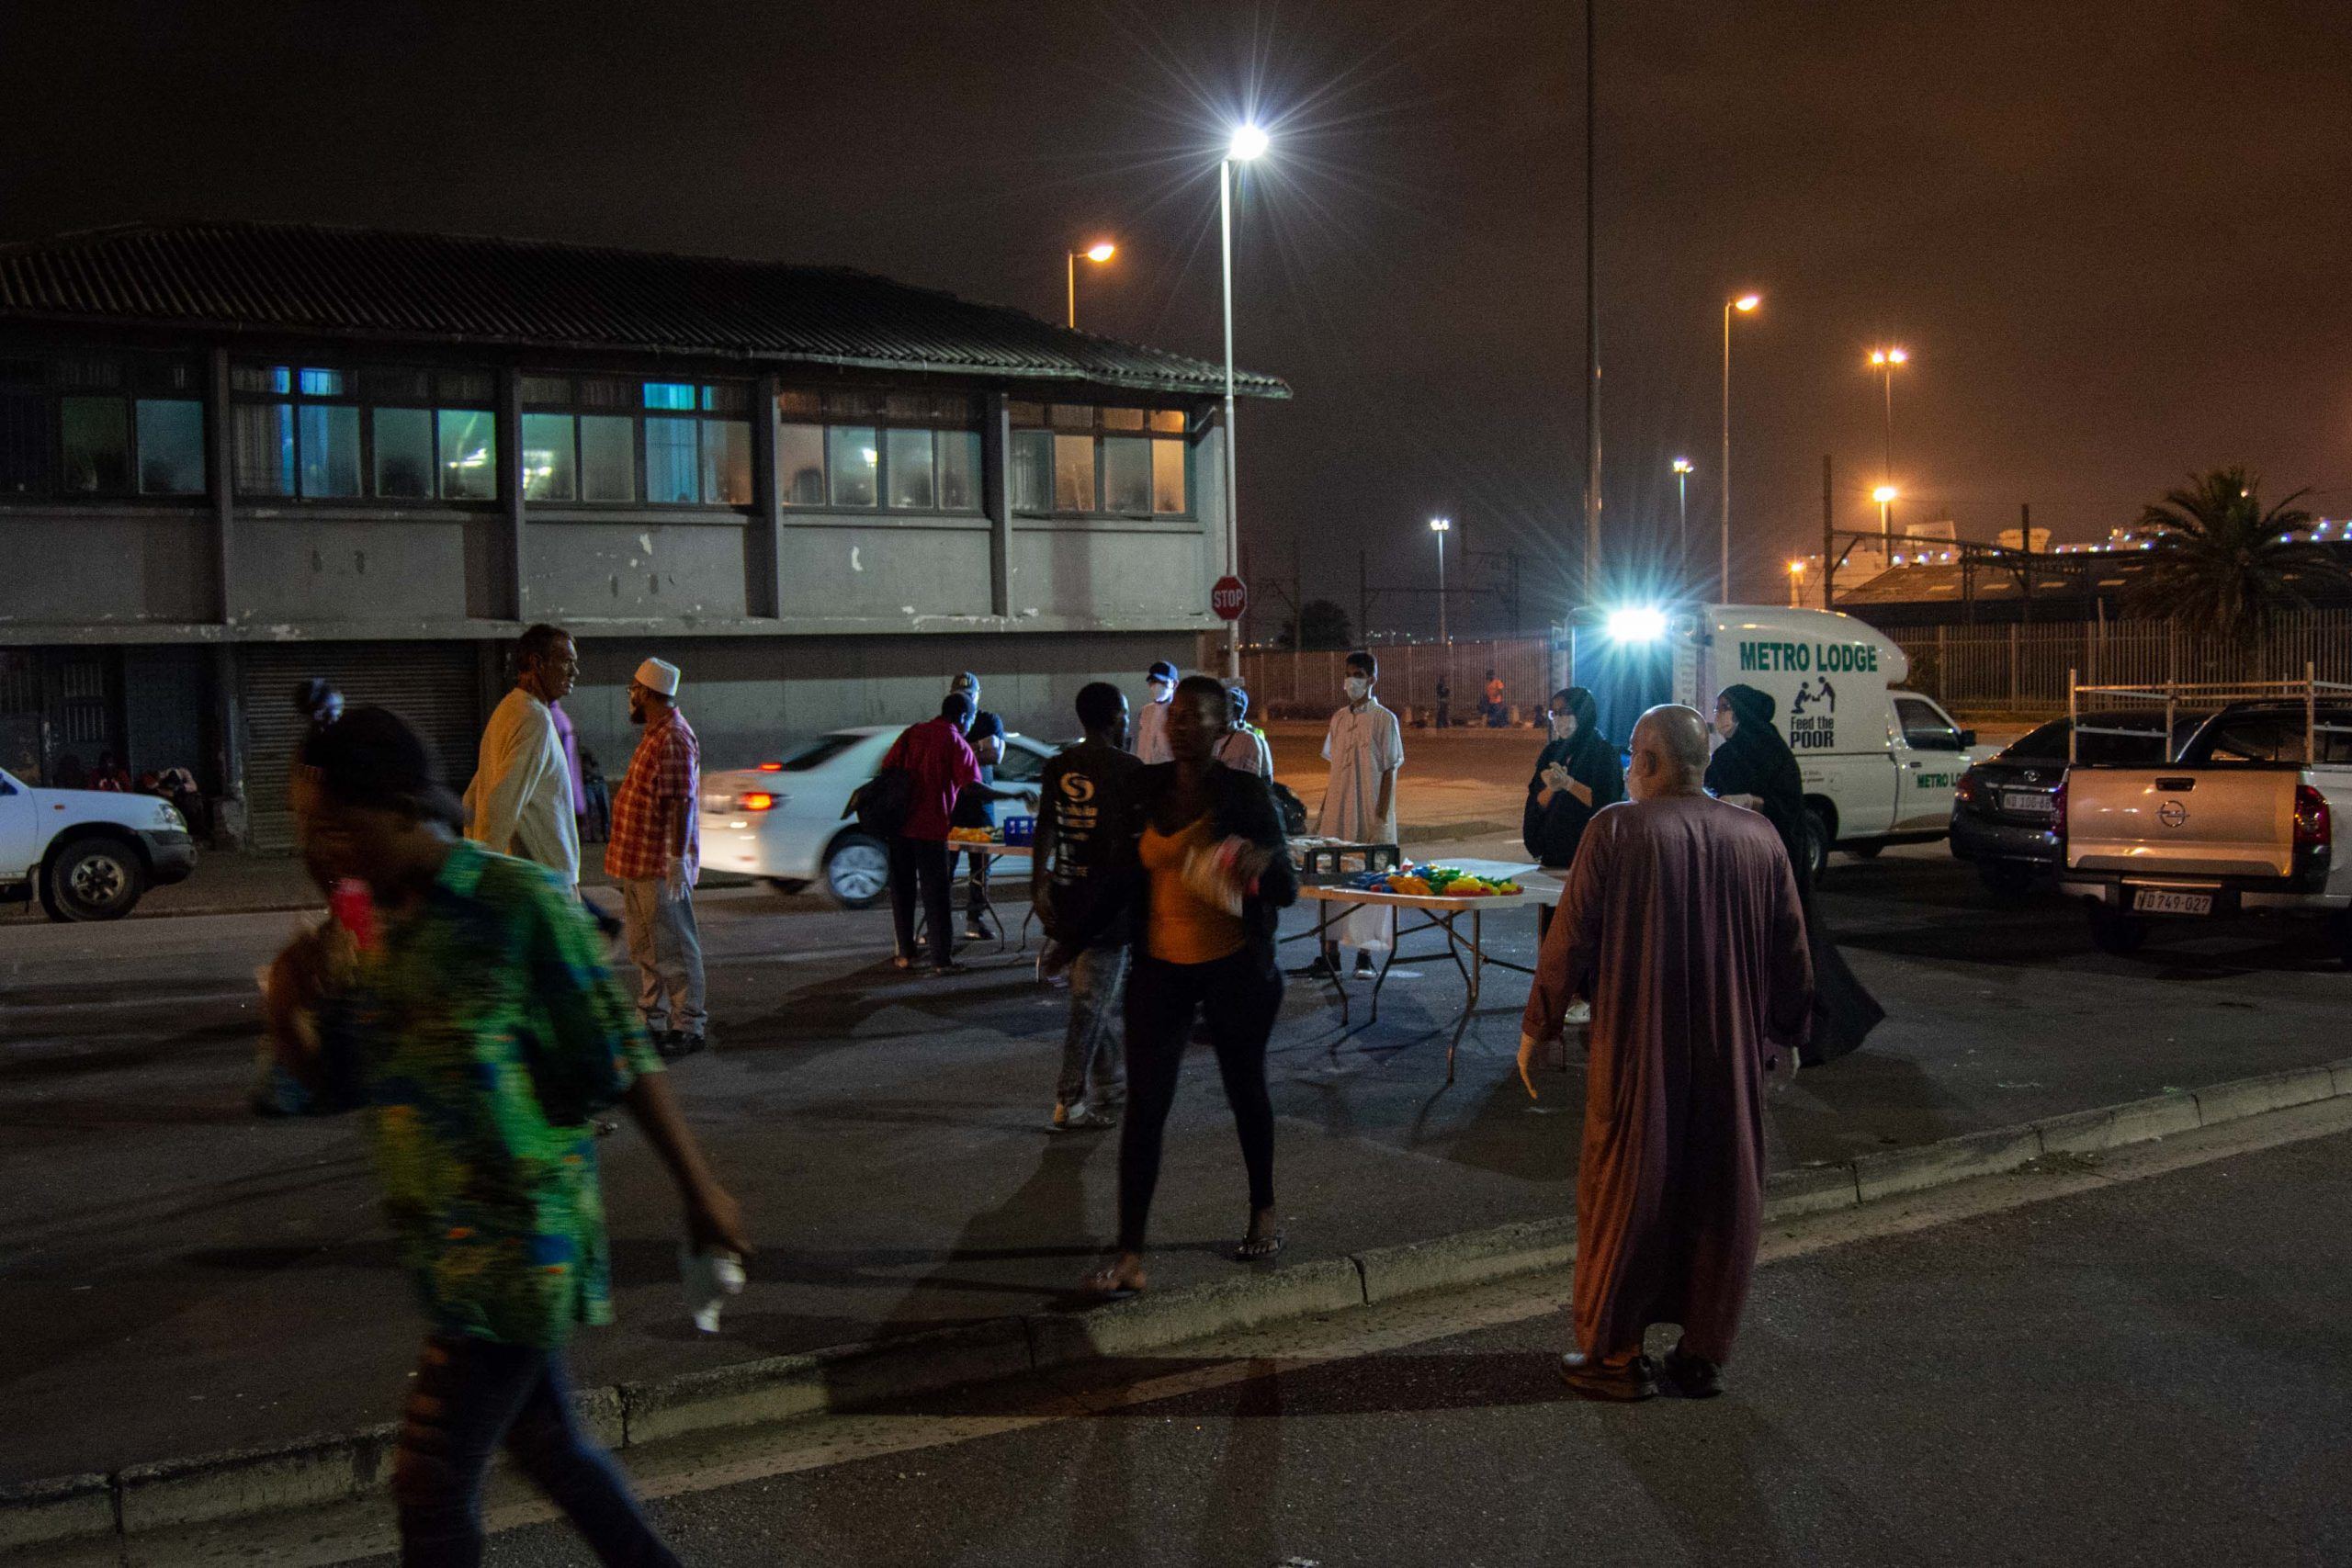 Undated: eThekwini residents, most of them homeless, arrive to get food parcels provided by the charitable organisation Feeding the Poor.